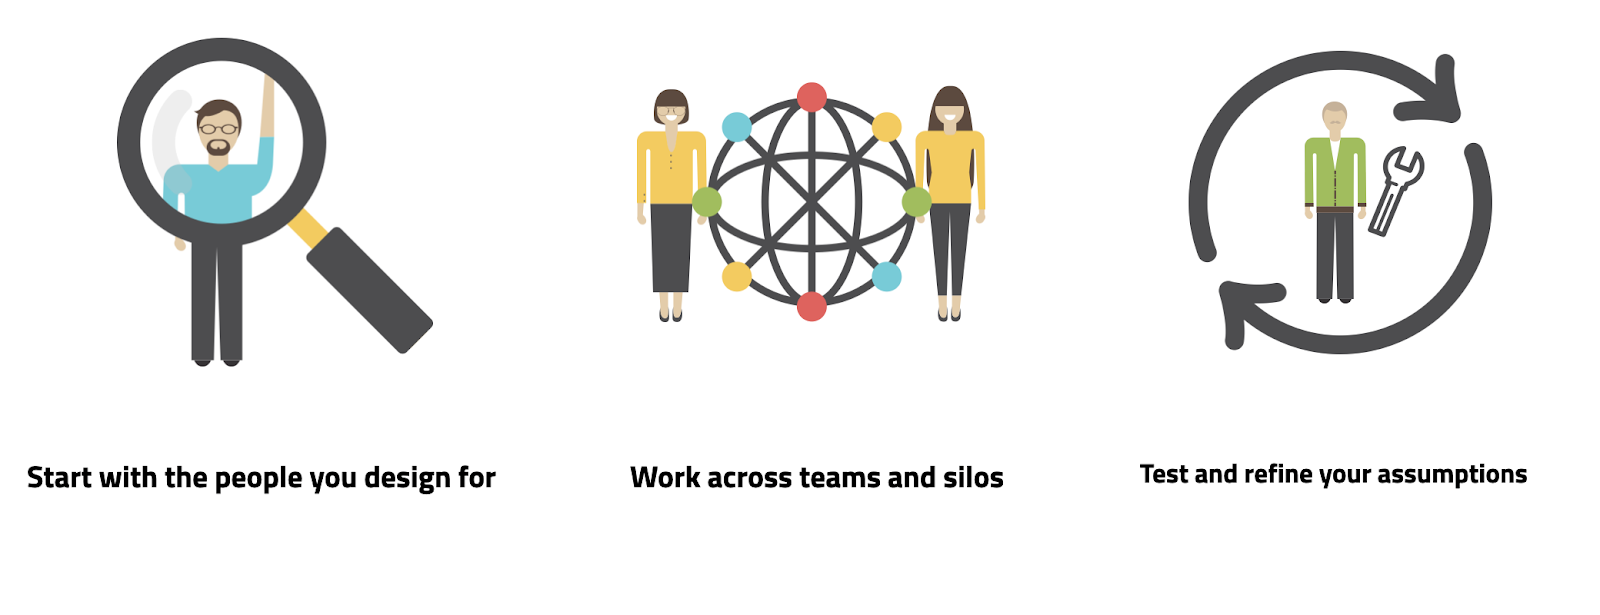 Graphic lays out the 3 principles of service design